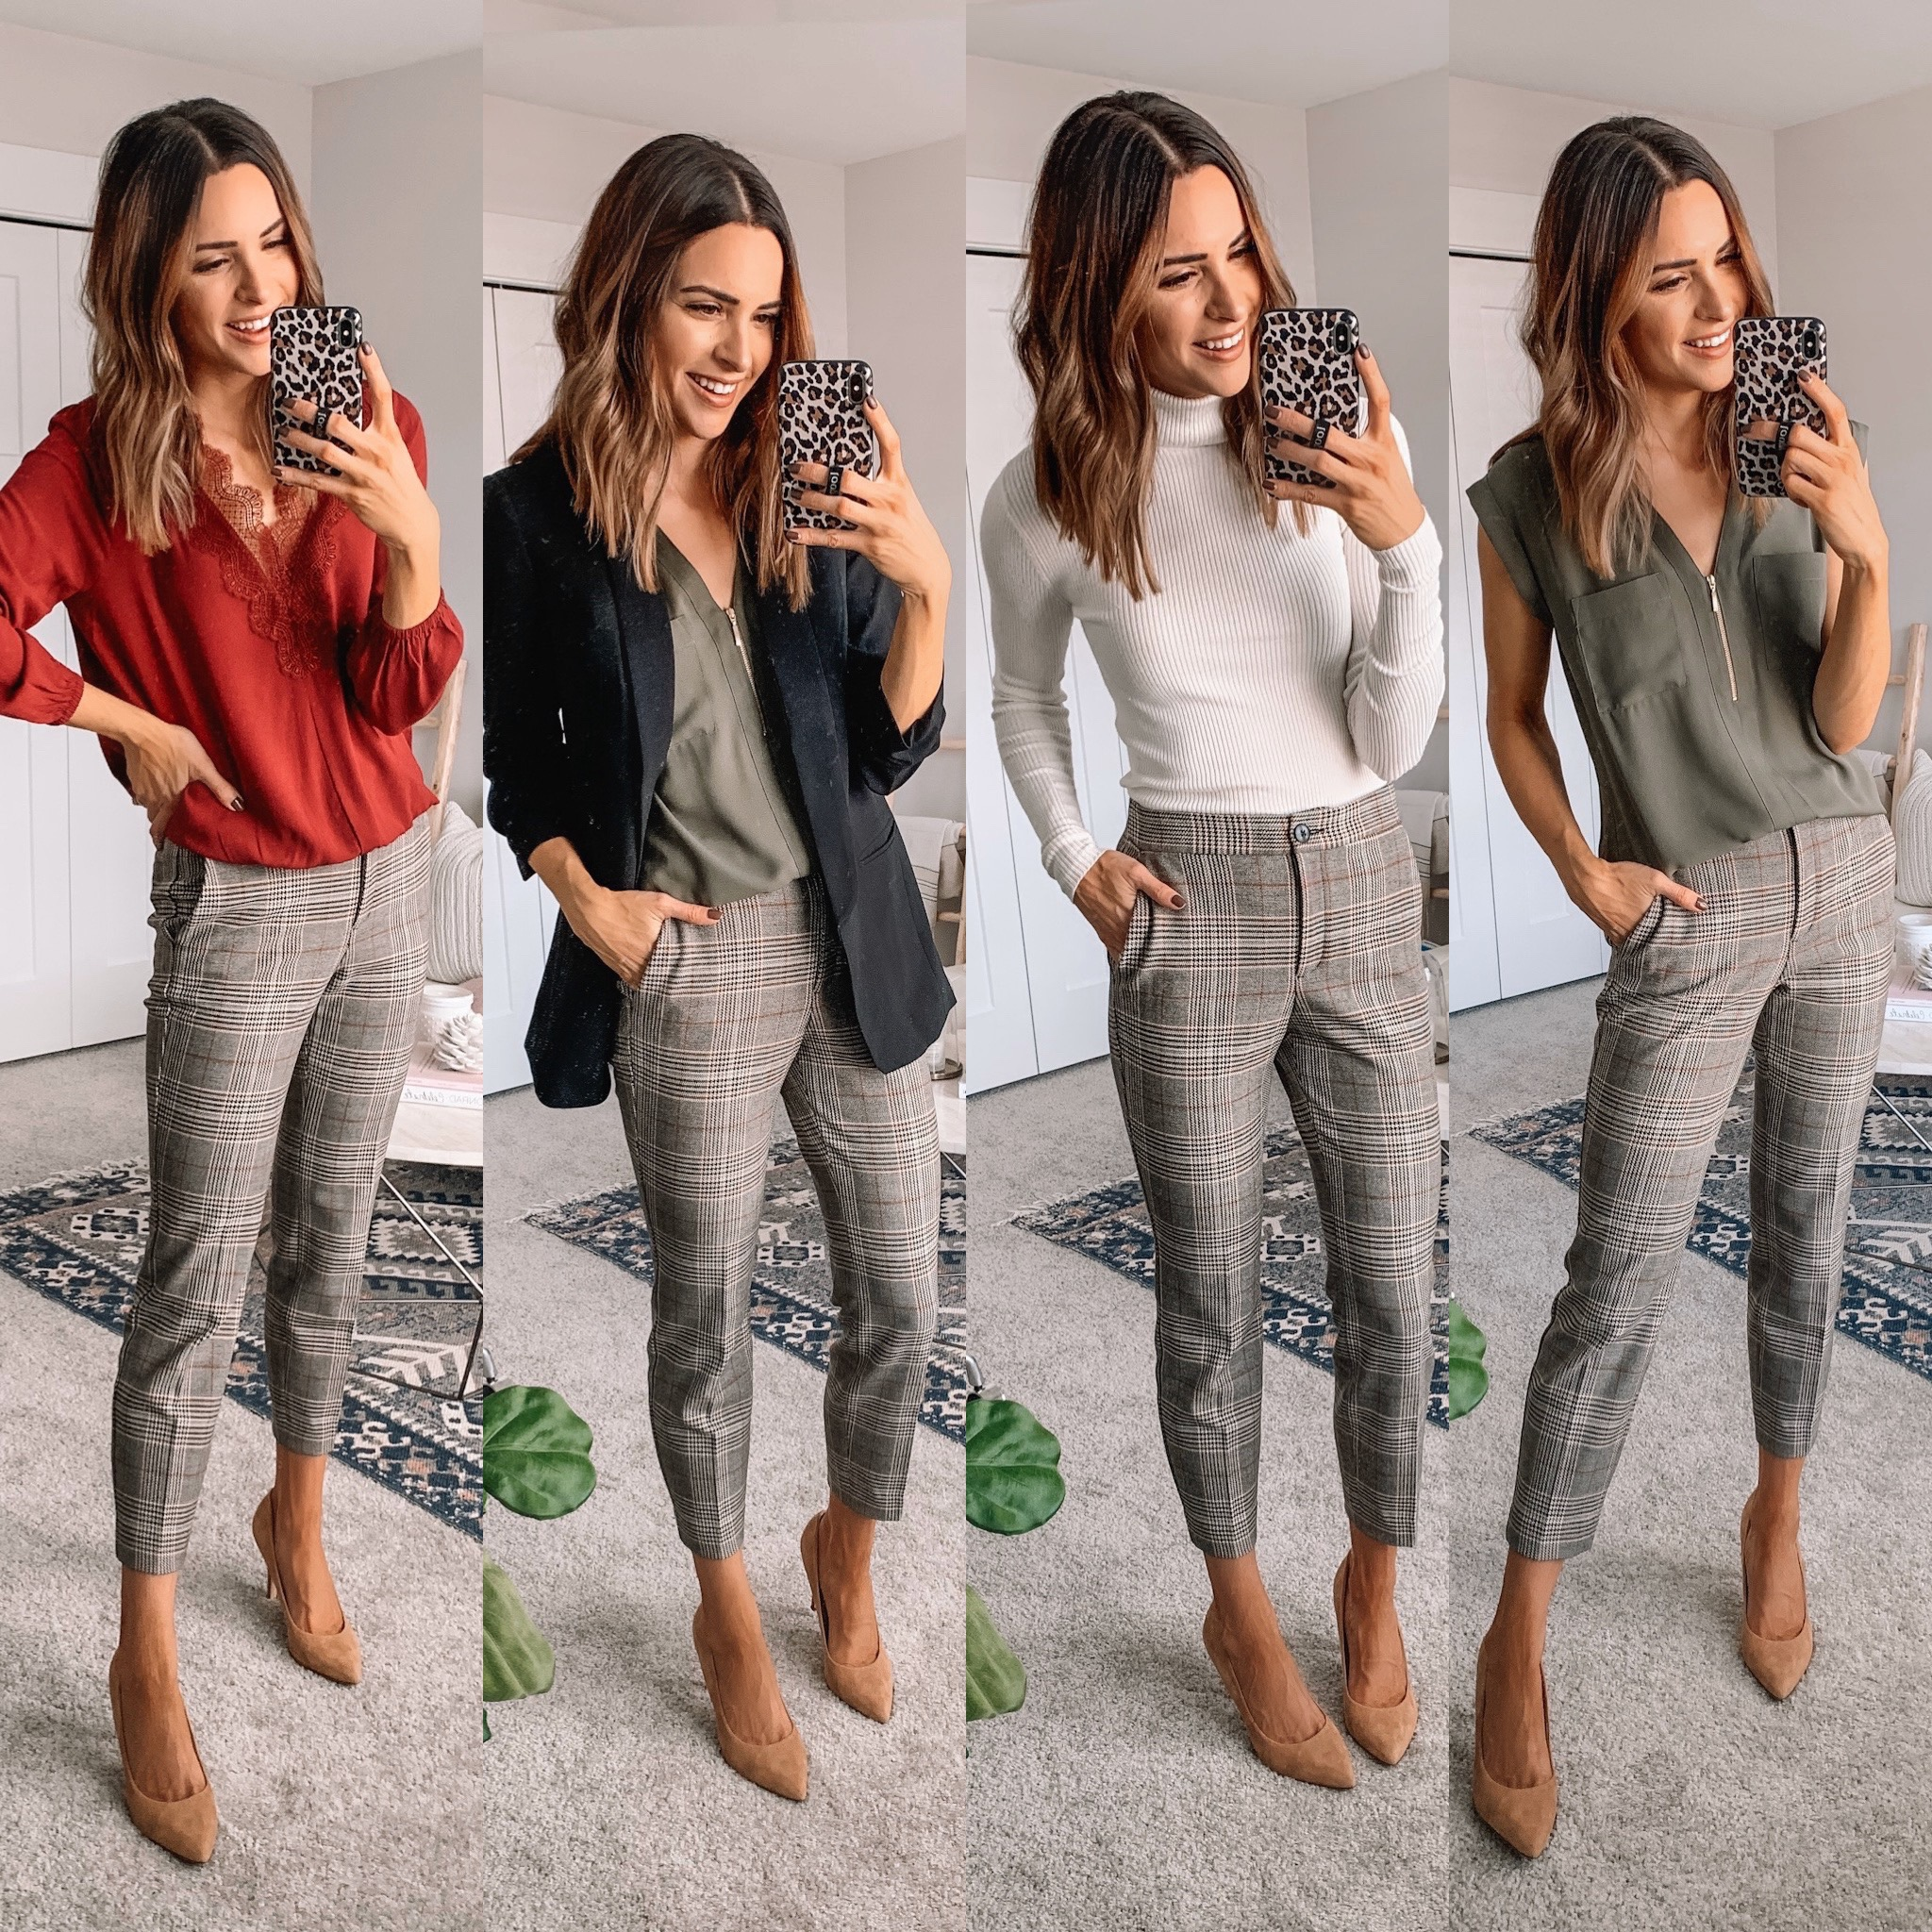 express Black Friday cyber Monday sale 2019. work wear, affordable fashion, winter fashion, plaid pants women, Minneapolis blogger, how to wear